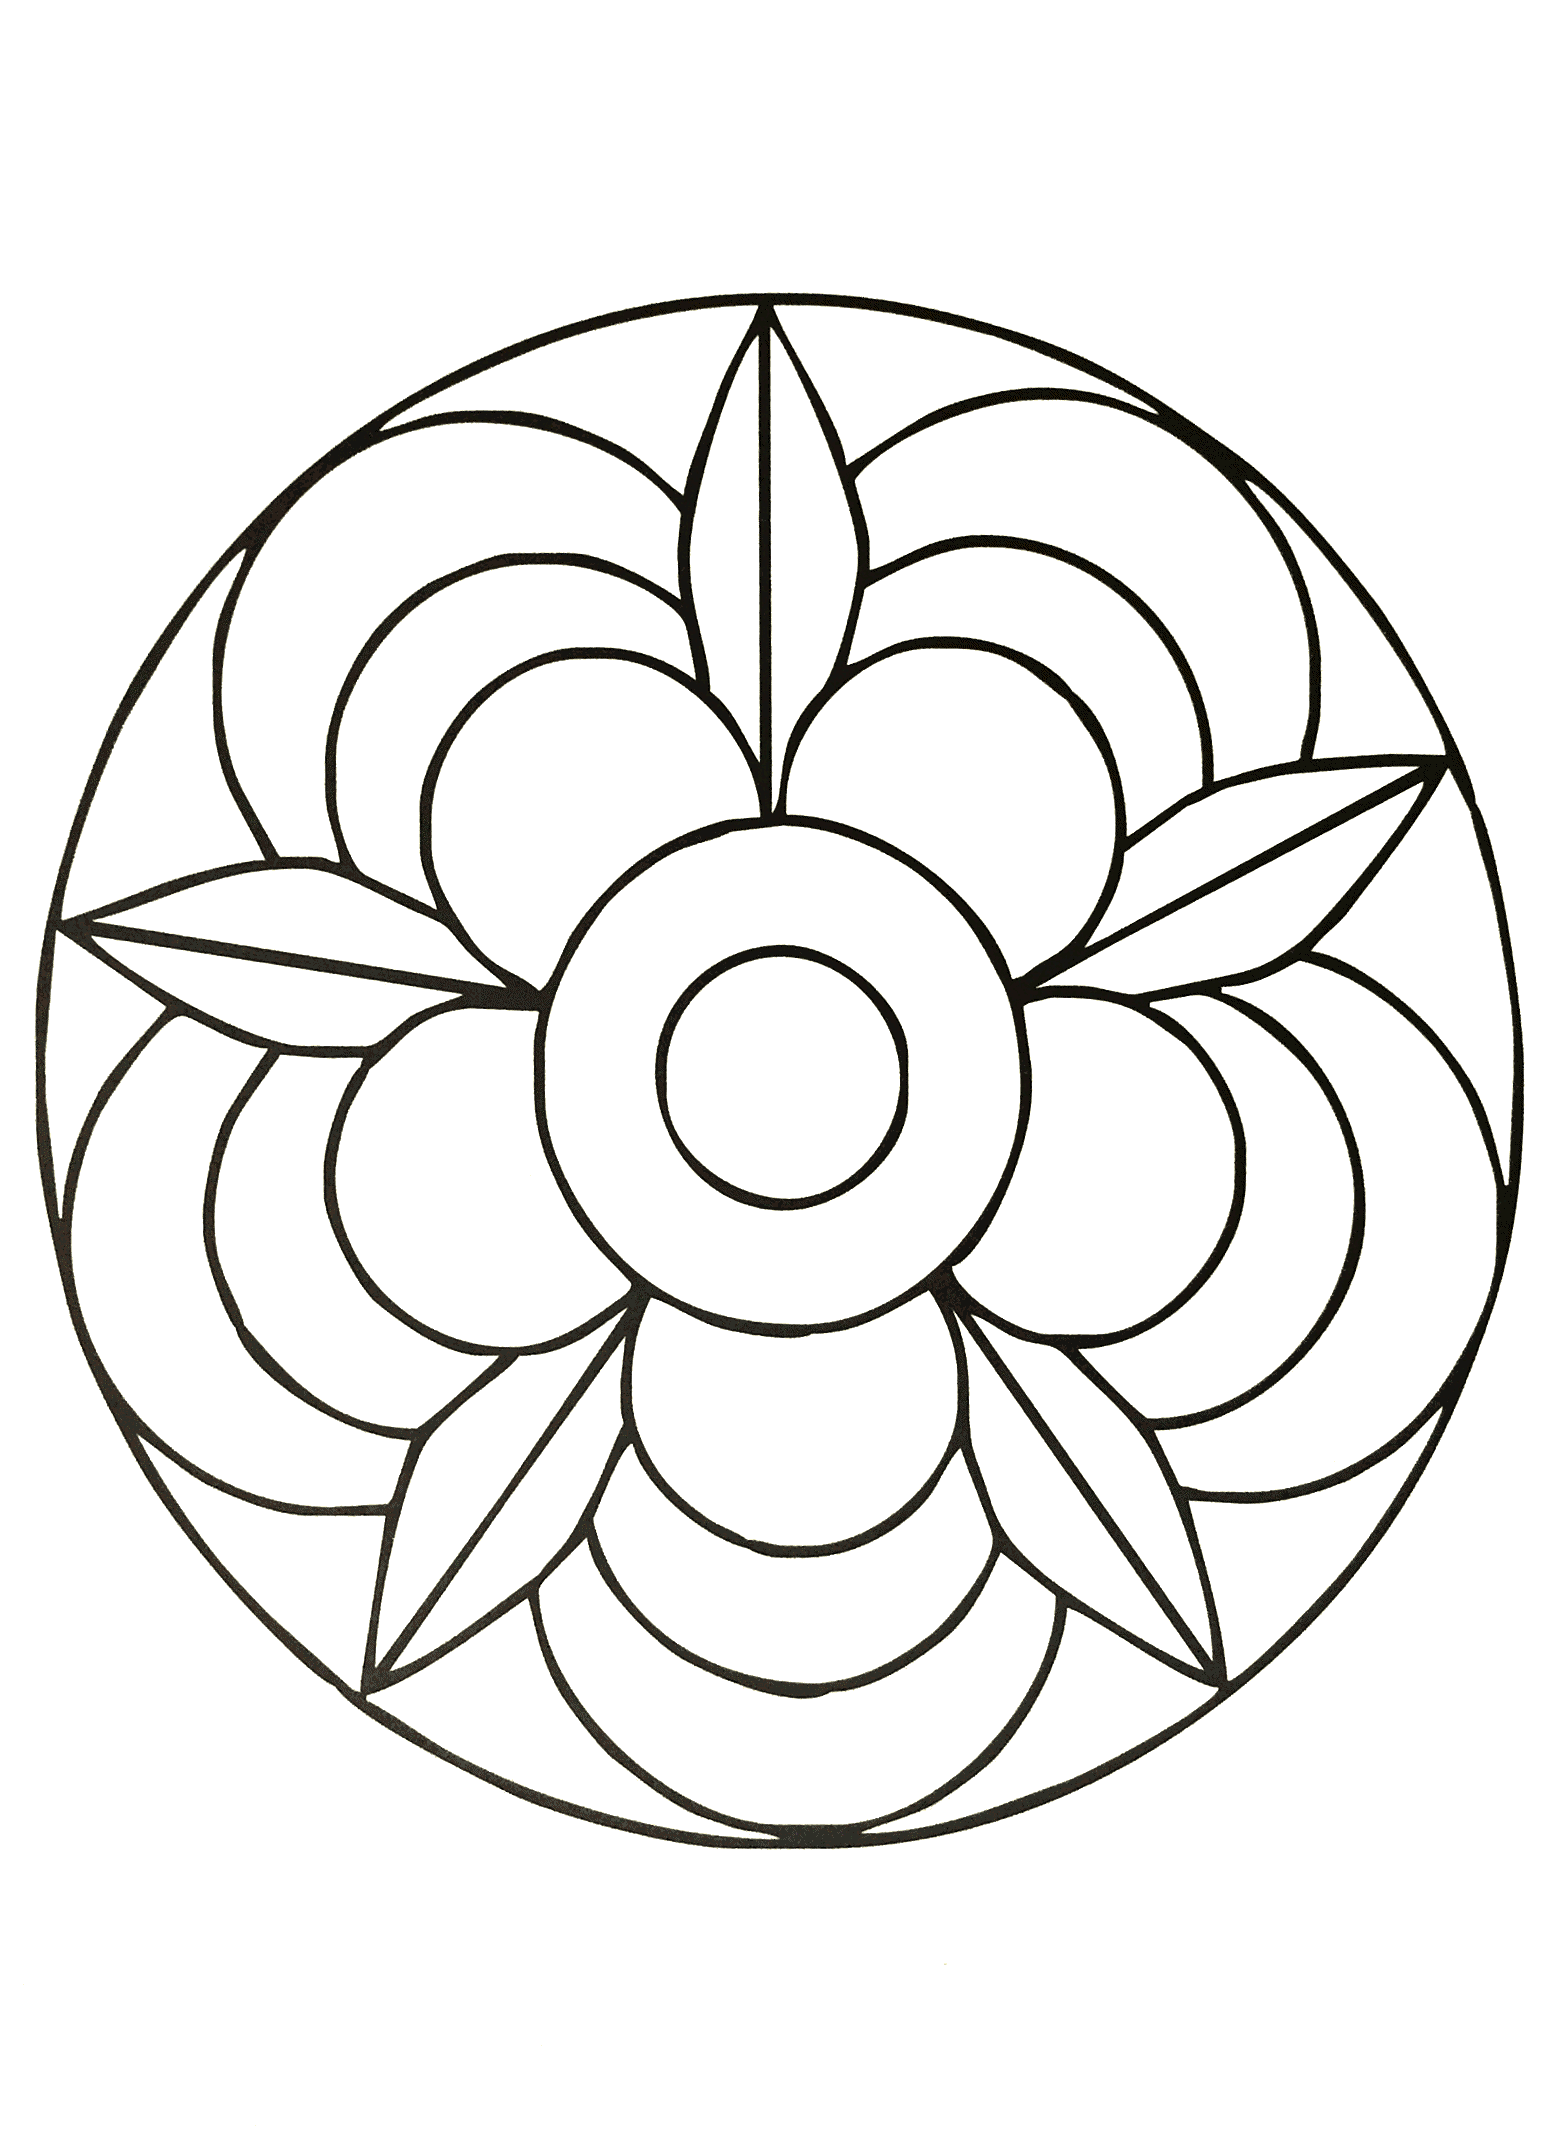 Simple Mandala 40 Mandalas Coloring Pages For Kids Coloring